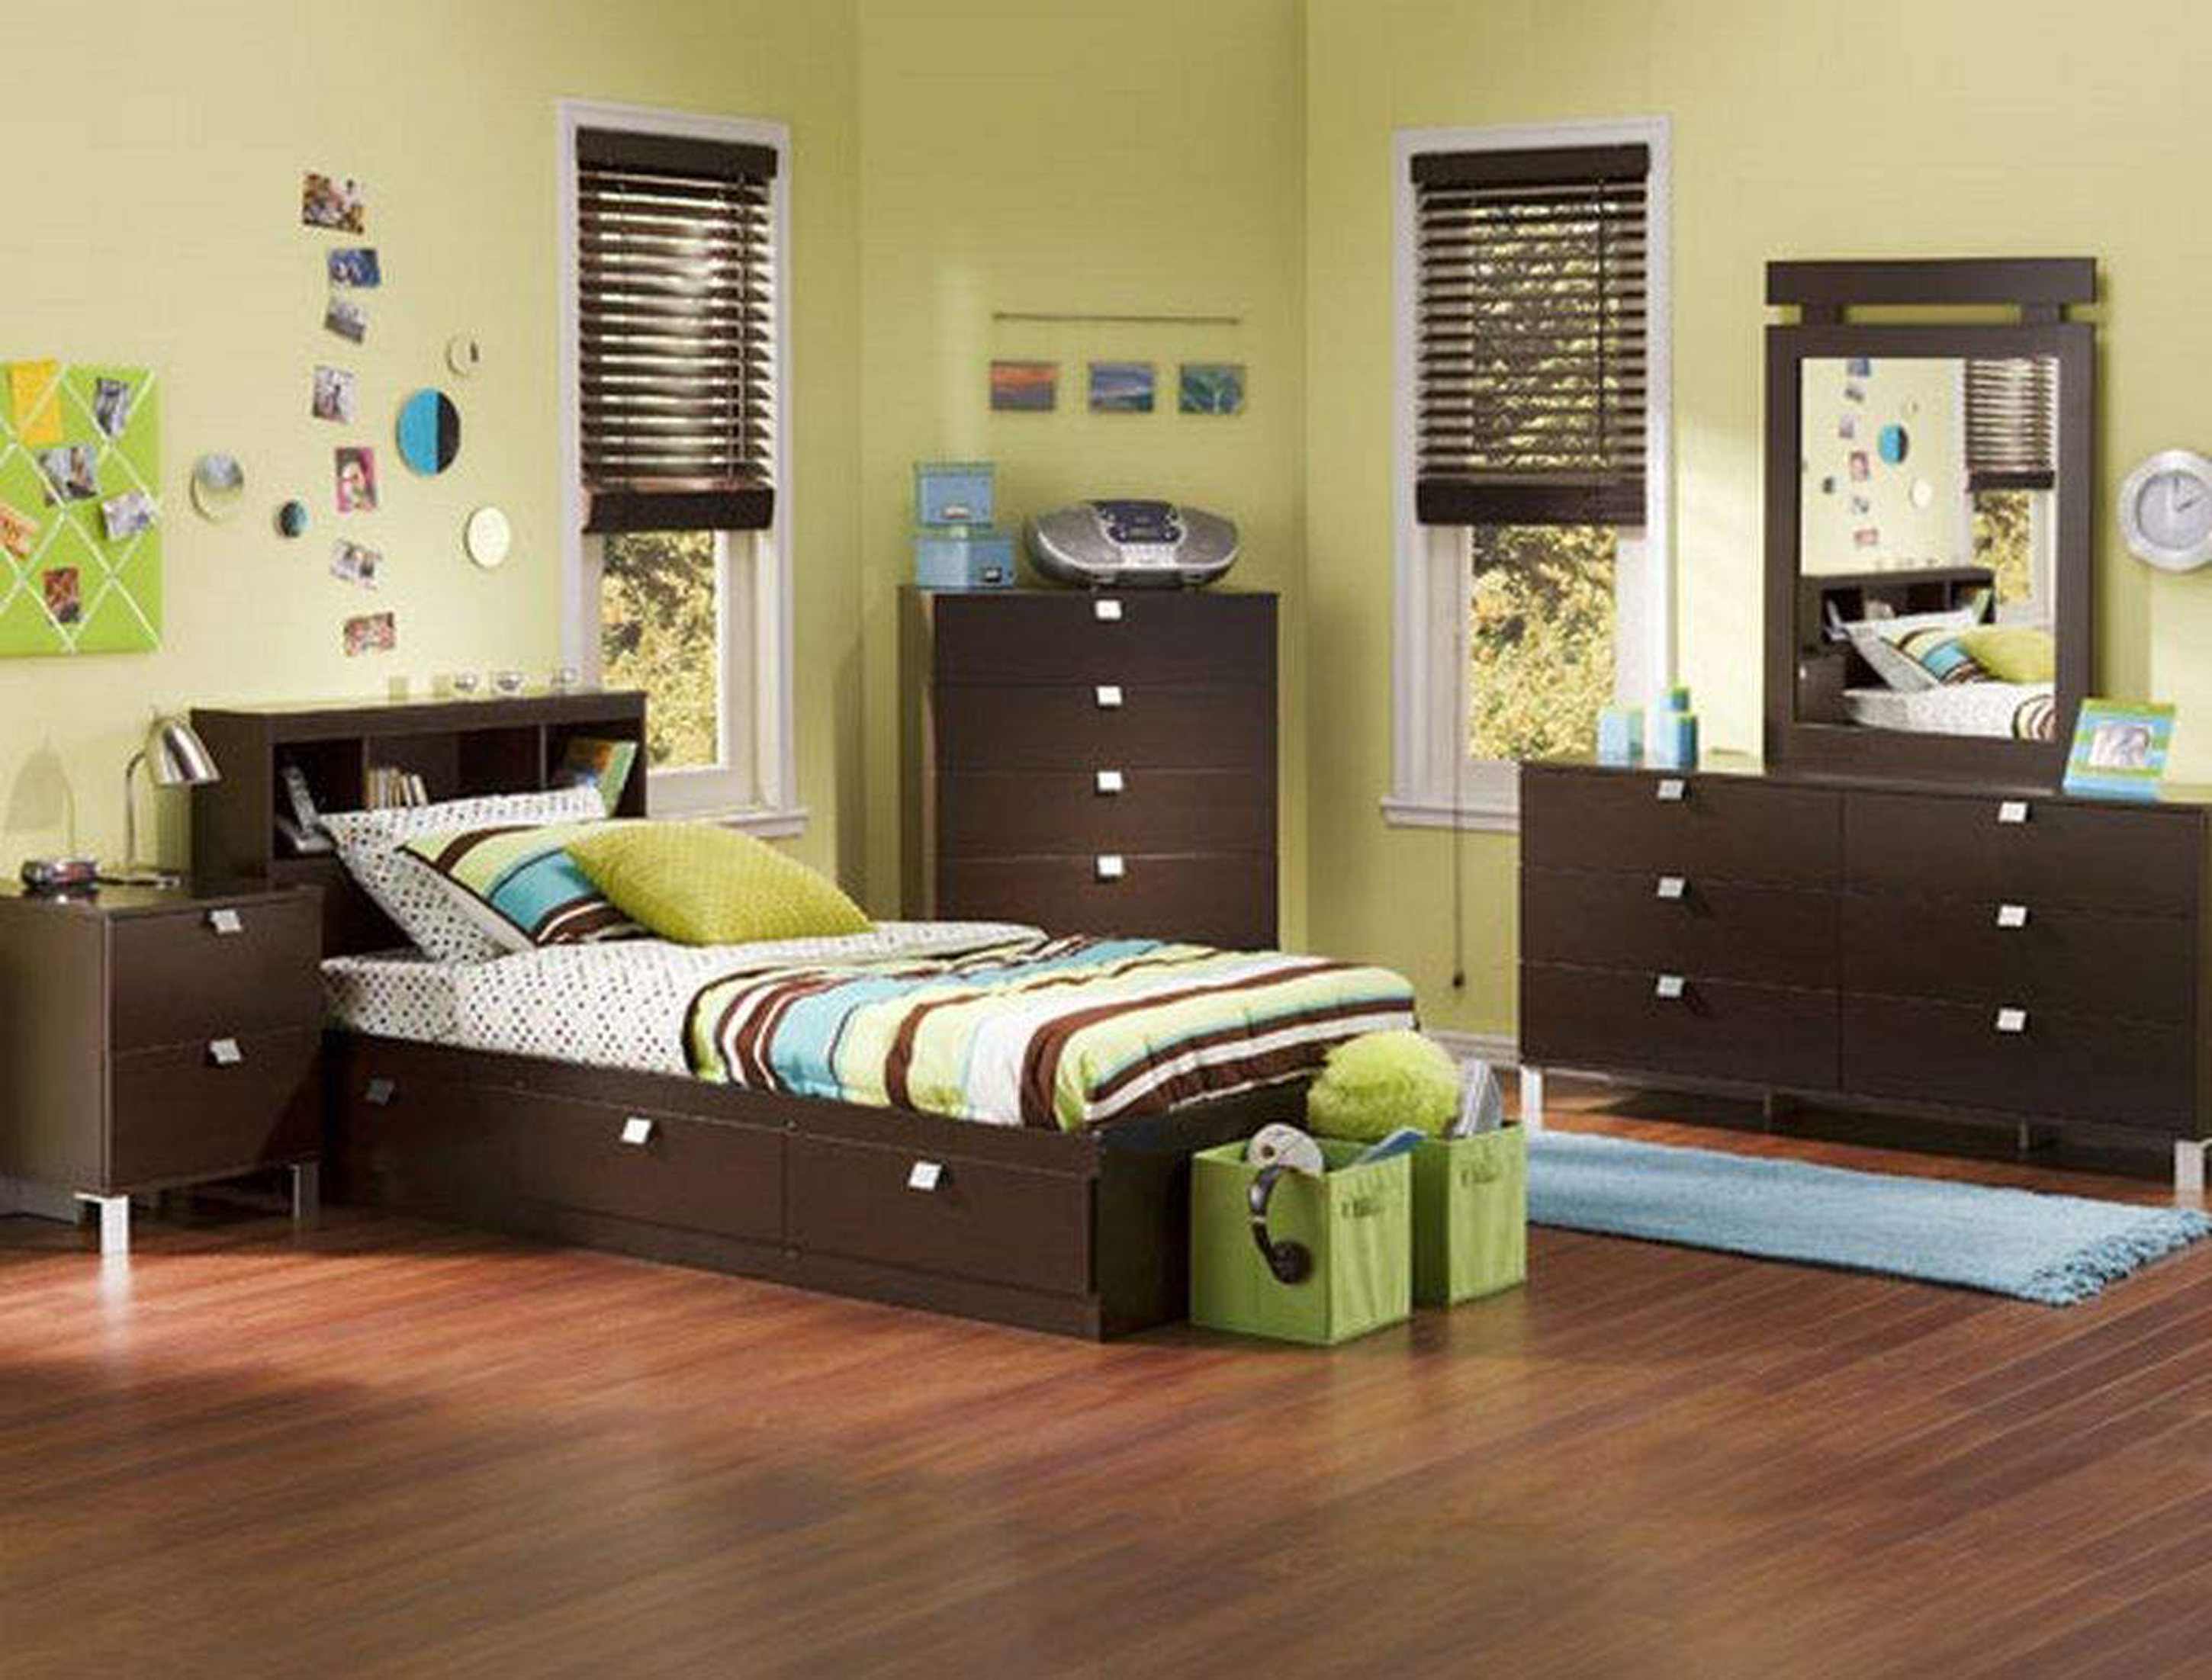 Kids Bedroom Impressive Boys Bedroom Decoration Idea With Chocolate Furniture Light Green Wall And Light Blue Rug Impressive Boys Bedroom Decoration Ideas (View 7 of 28)